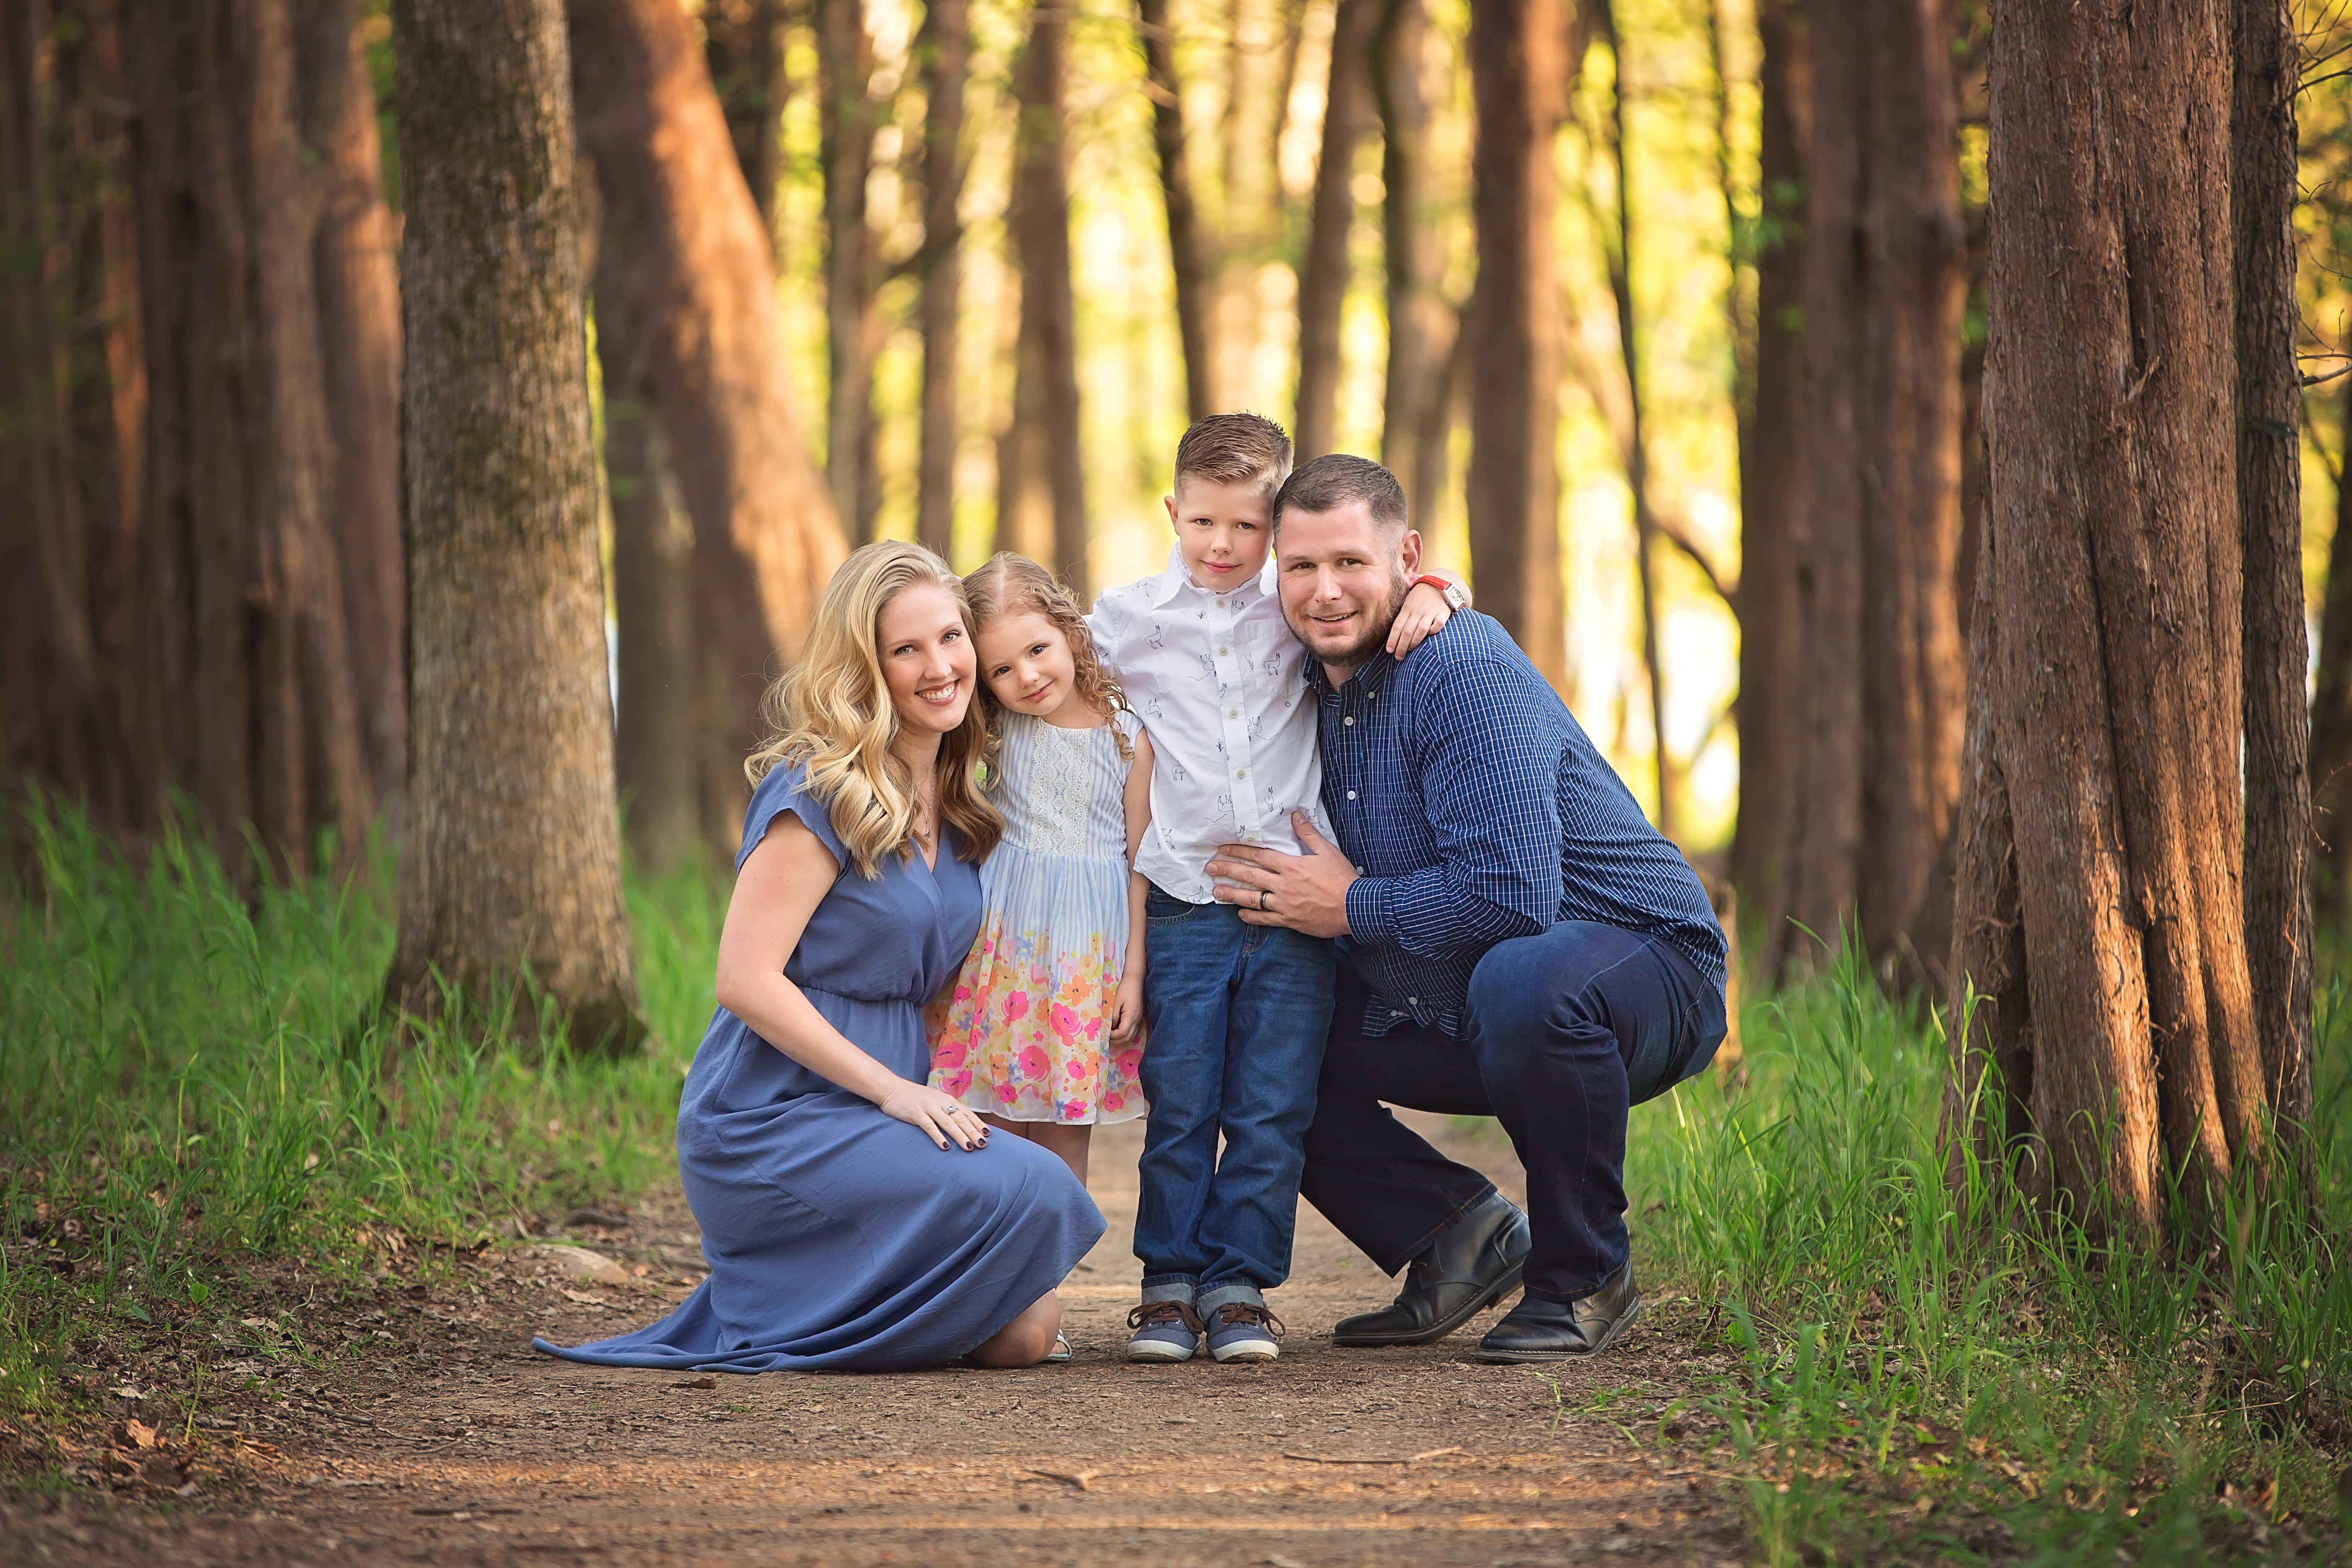 Family of 4 with forest backdrop - Jo McVey Photography